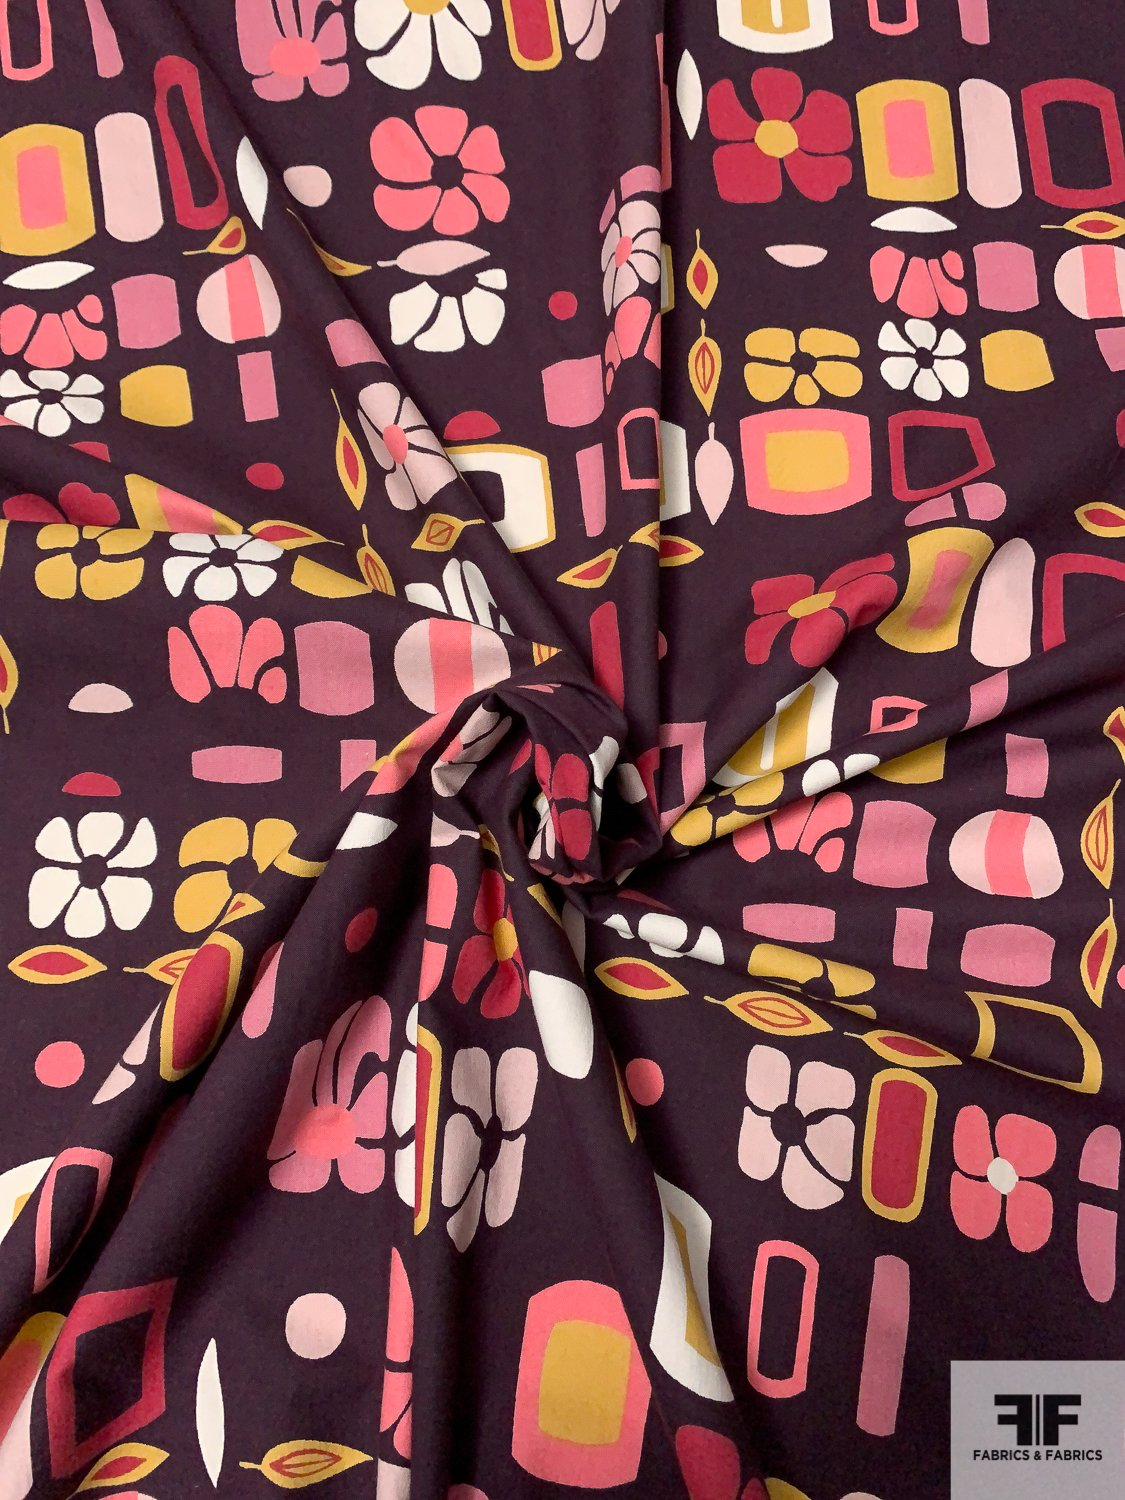 Made in Germany Groovy Floral and Geometric Printed Laundered Cotton Lawn - Brown / Blue / Pink / Rose